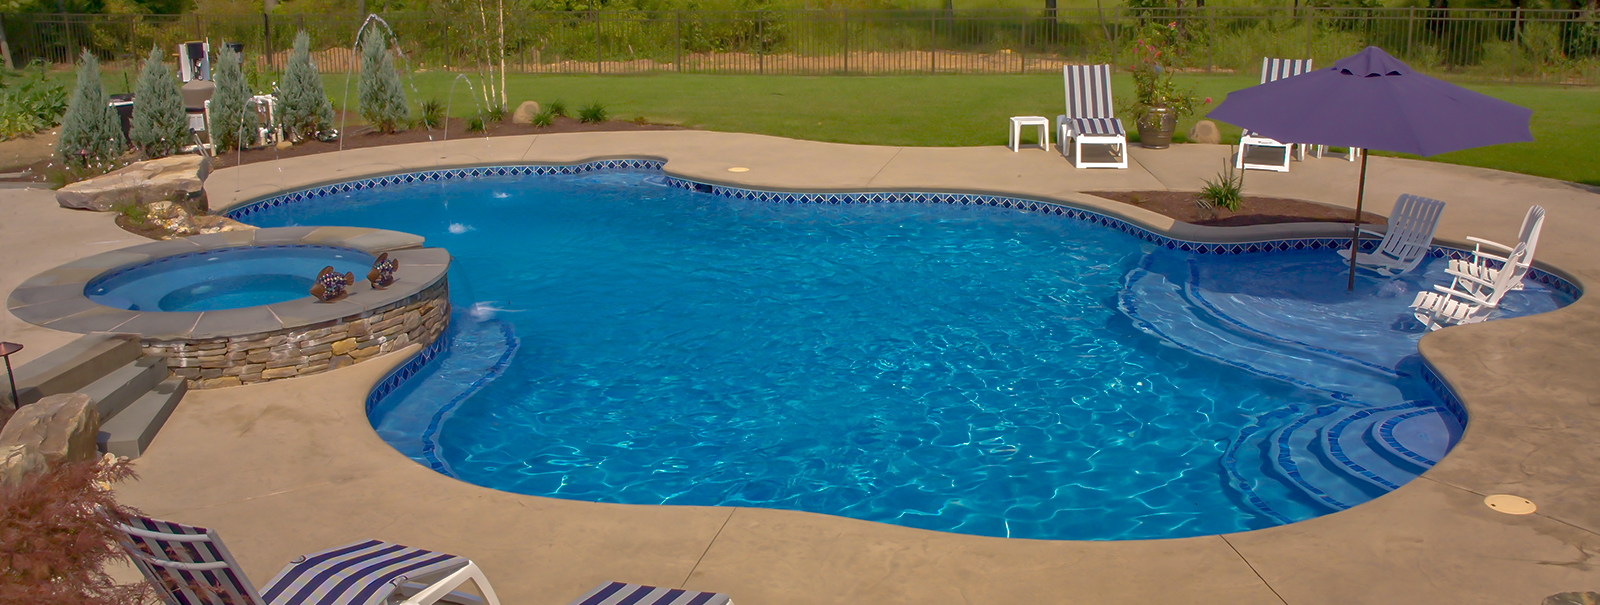 Harrisburg Lancaster Custom Swimming Pool Builders│Blue ...